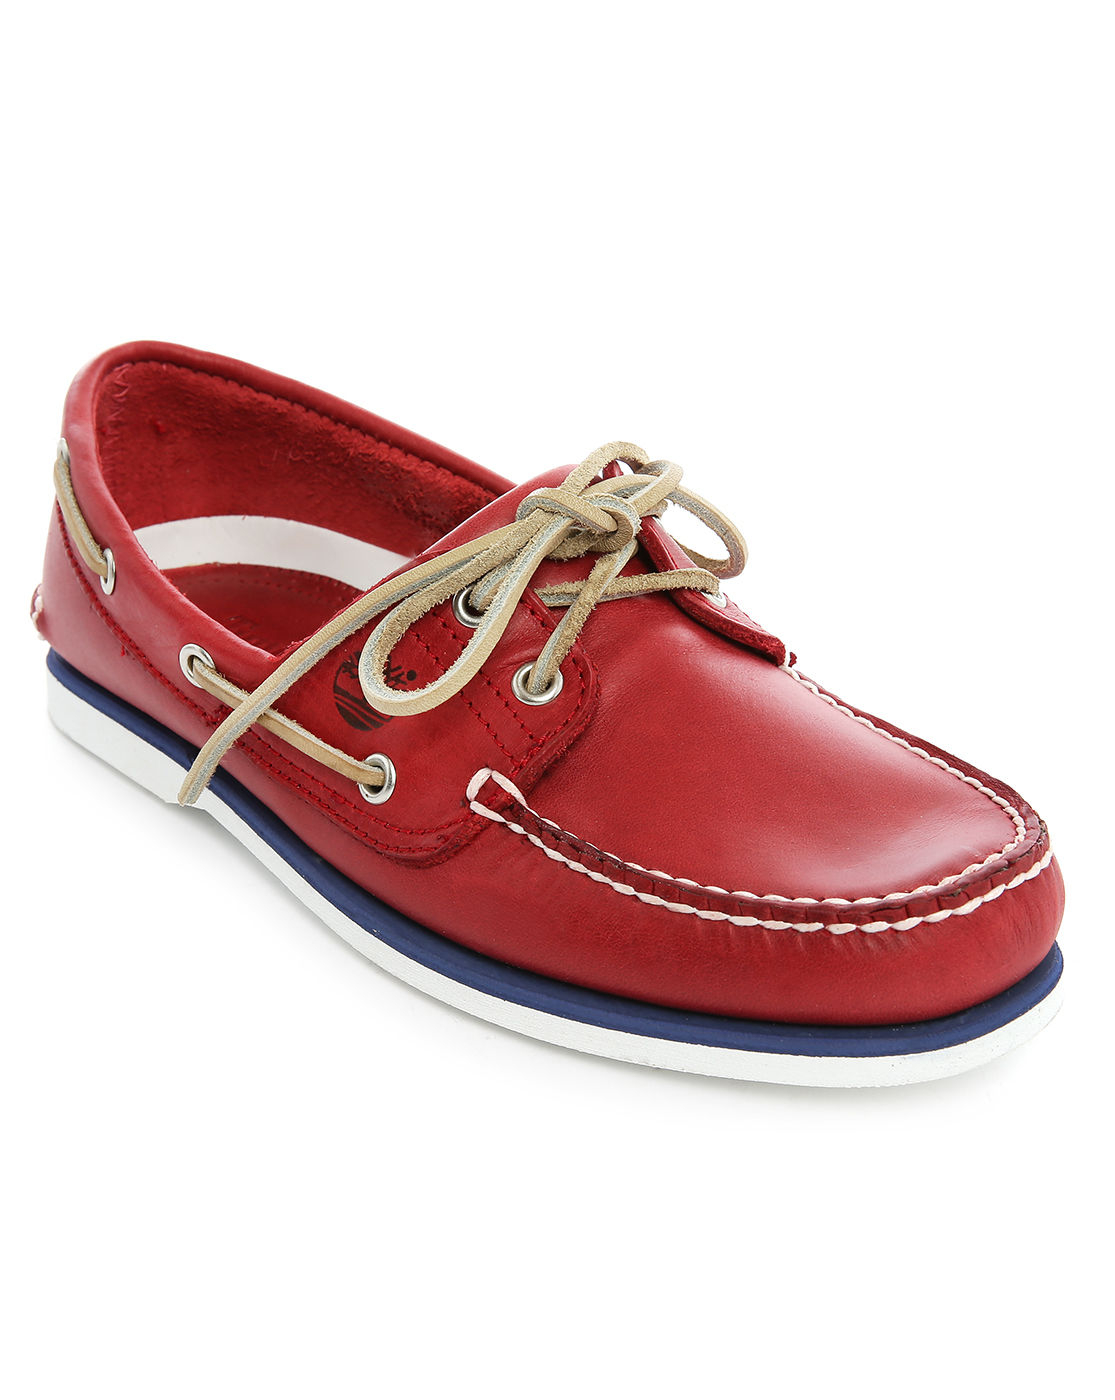 Timberland Red Leather Contrast Sole Boat Shoes in Red for ...